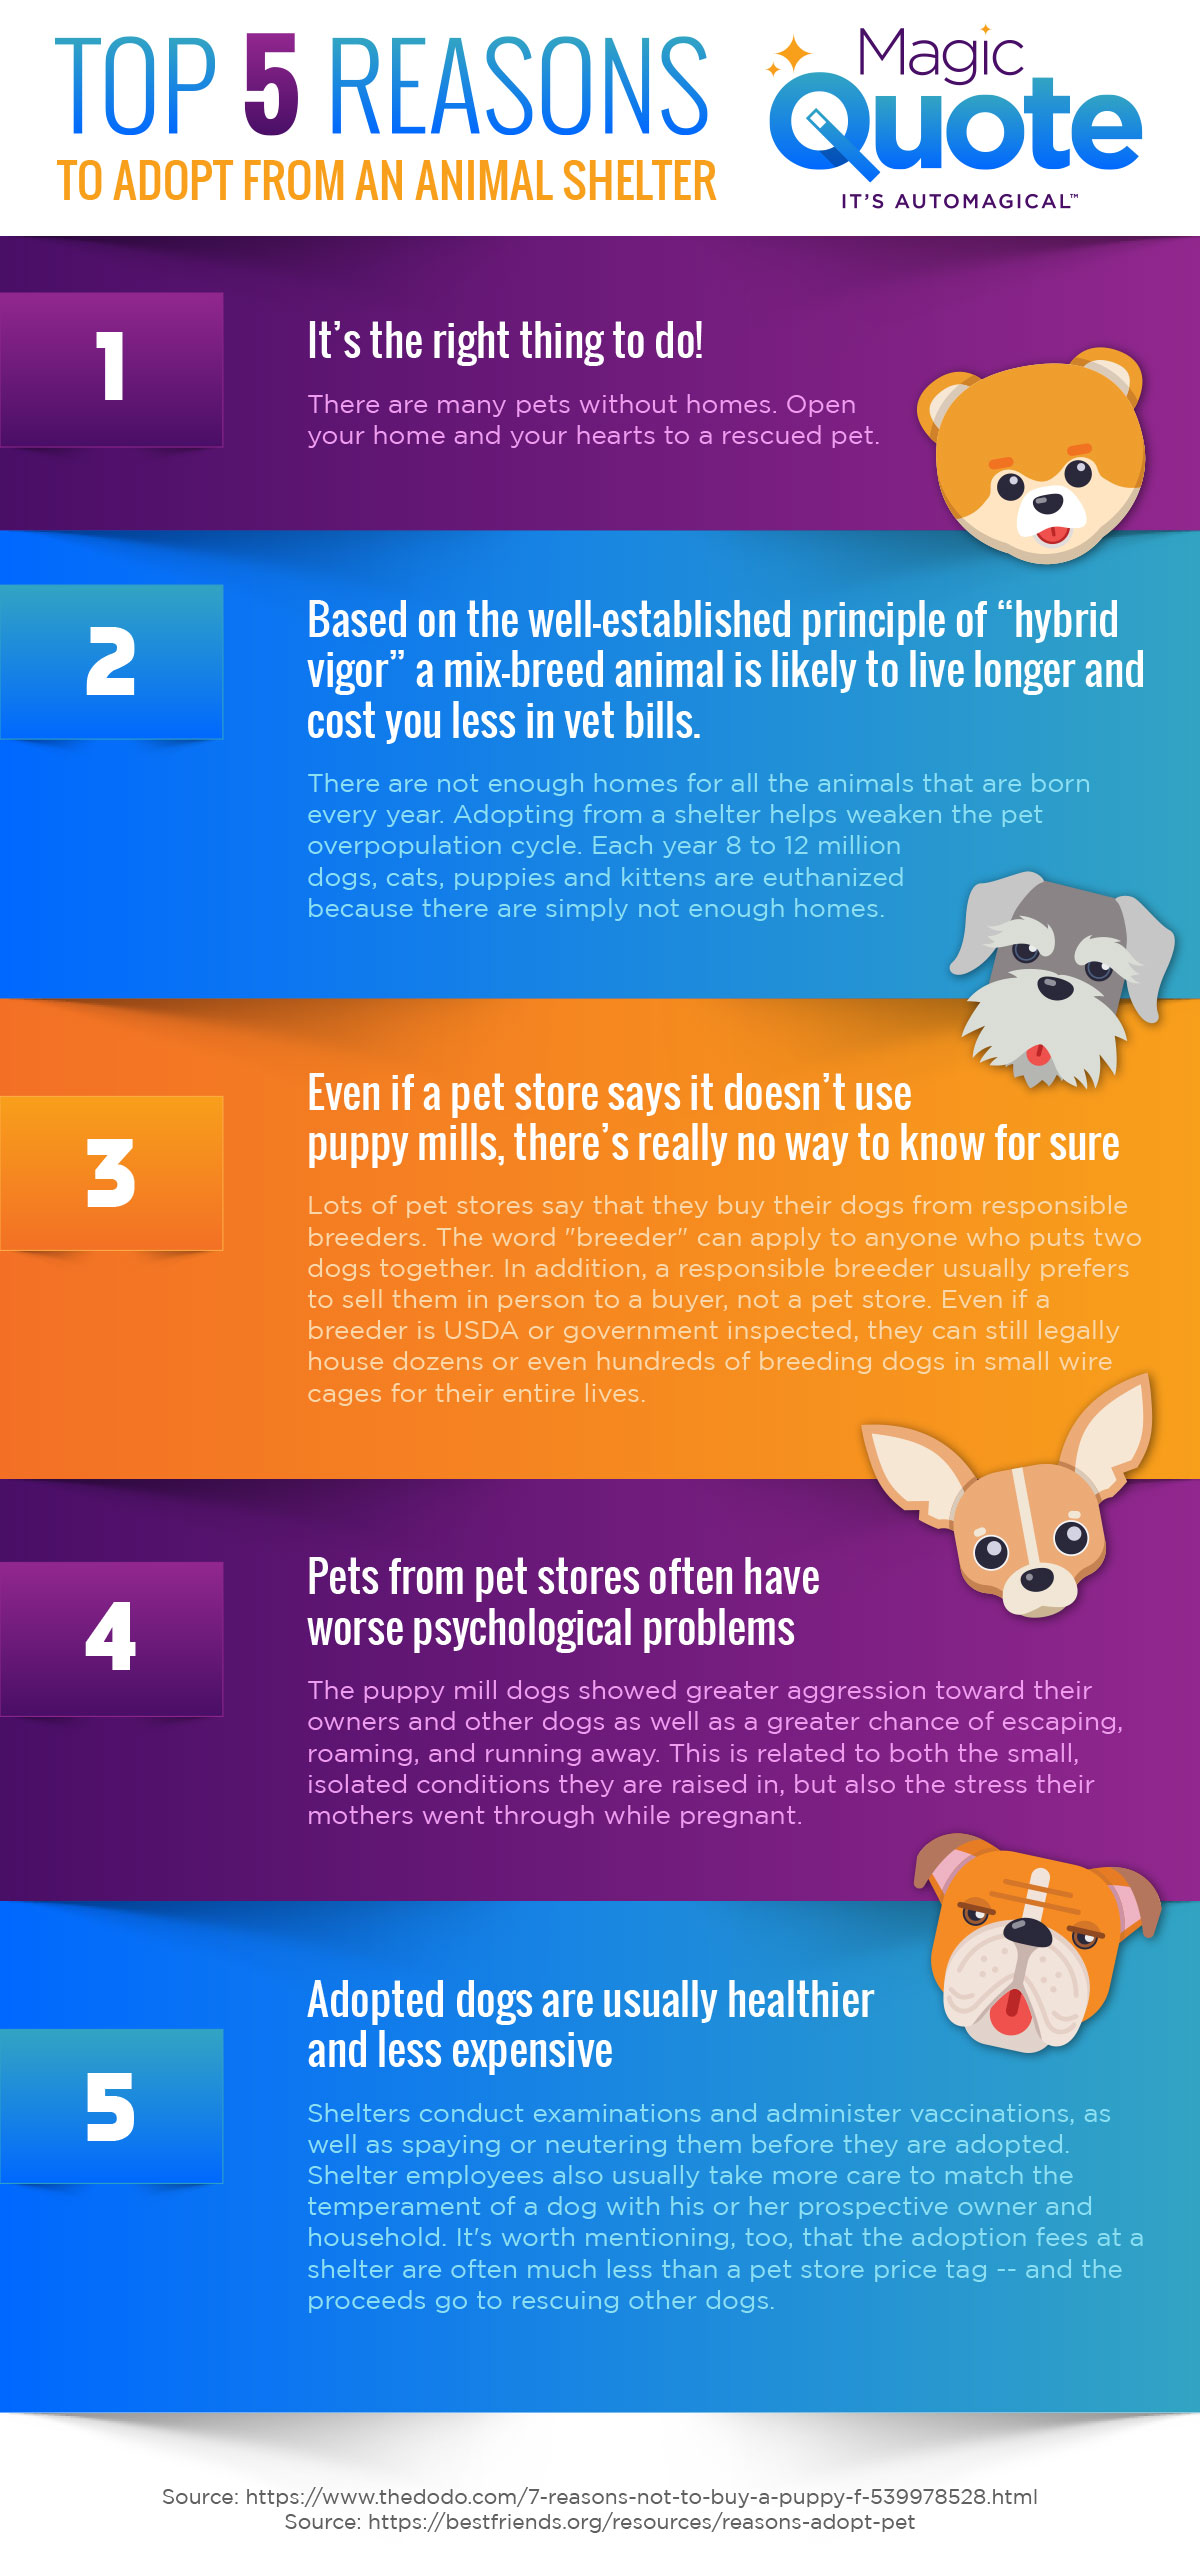 MQ-Infographic-Animal-Shelter-5-reasons